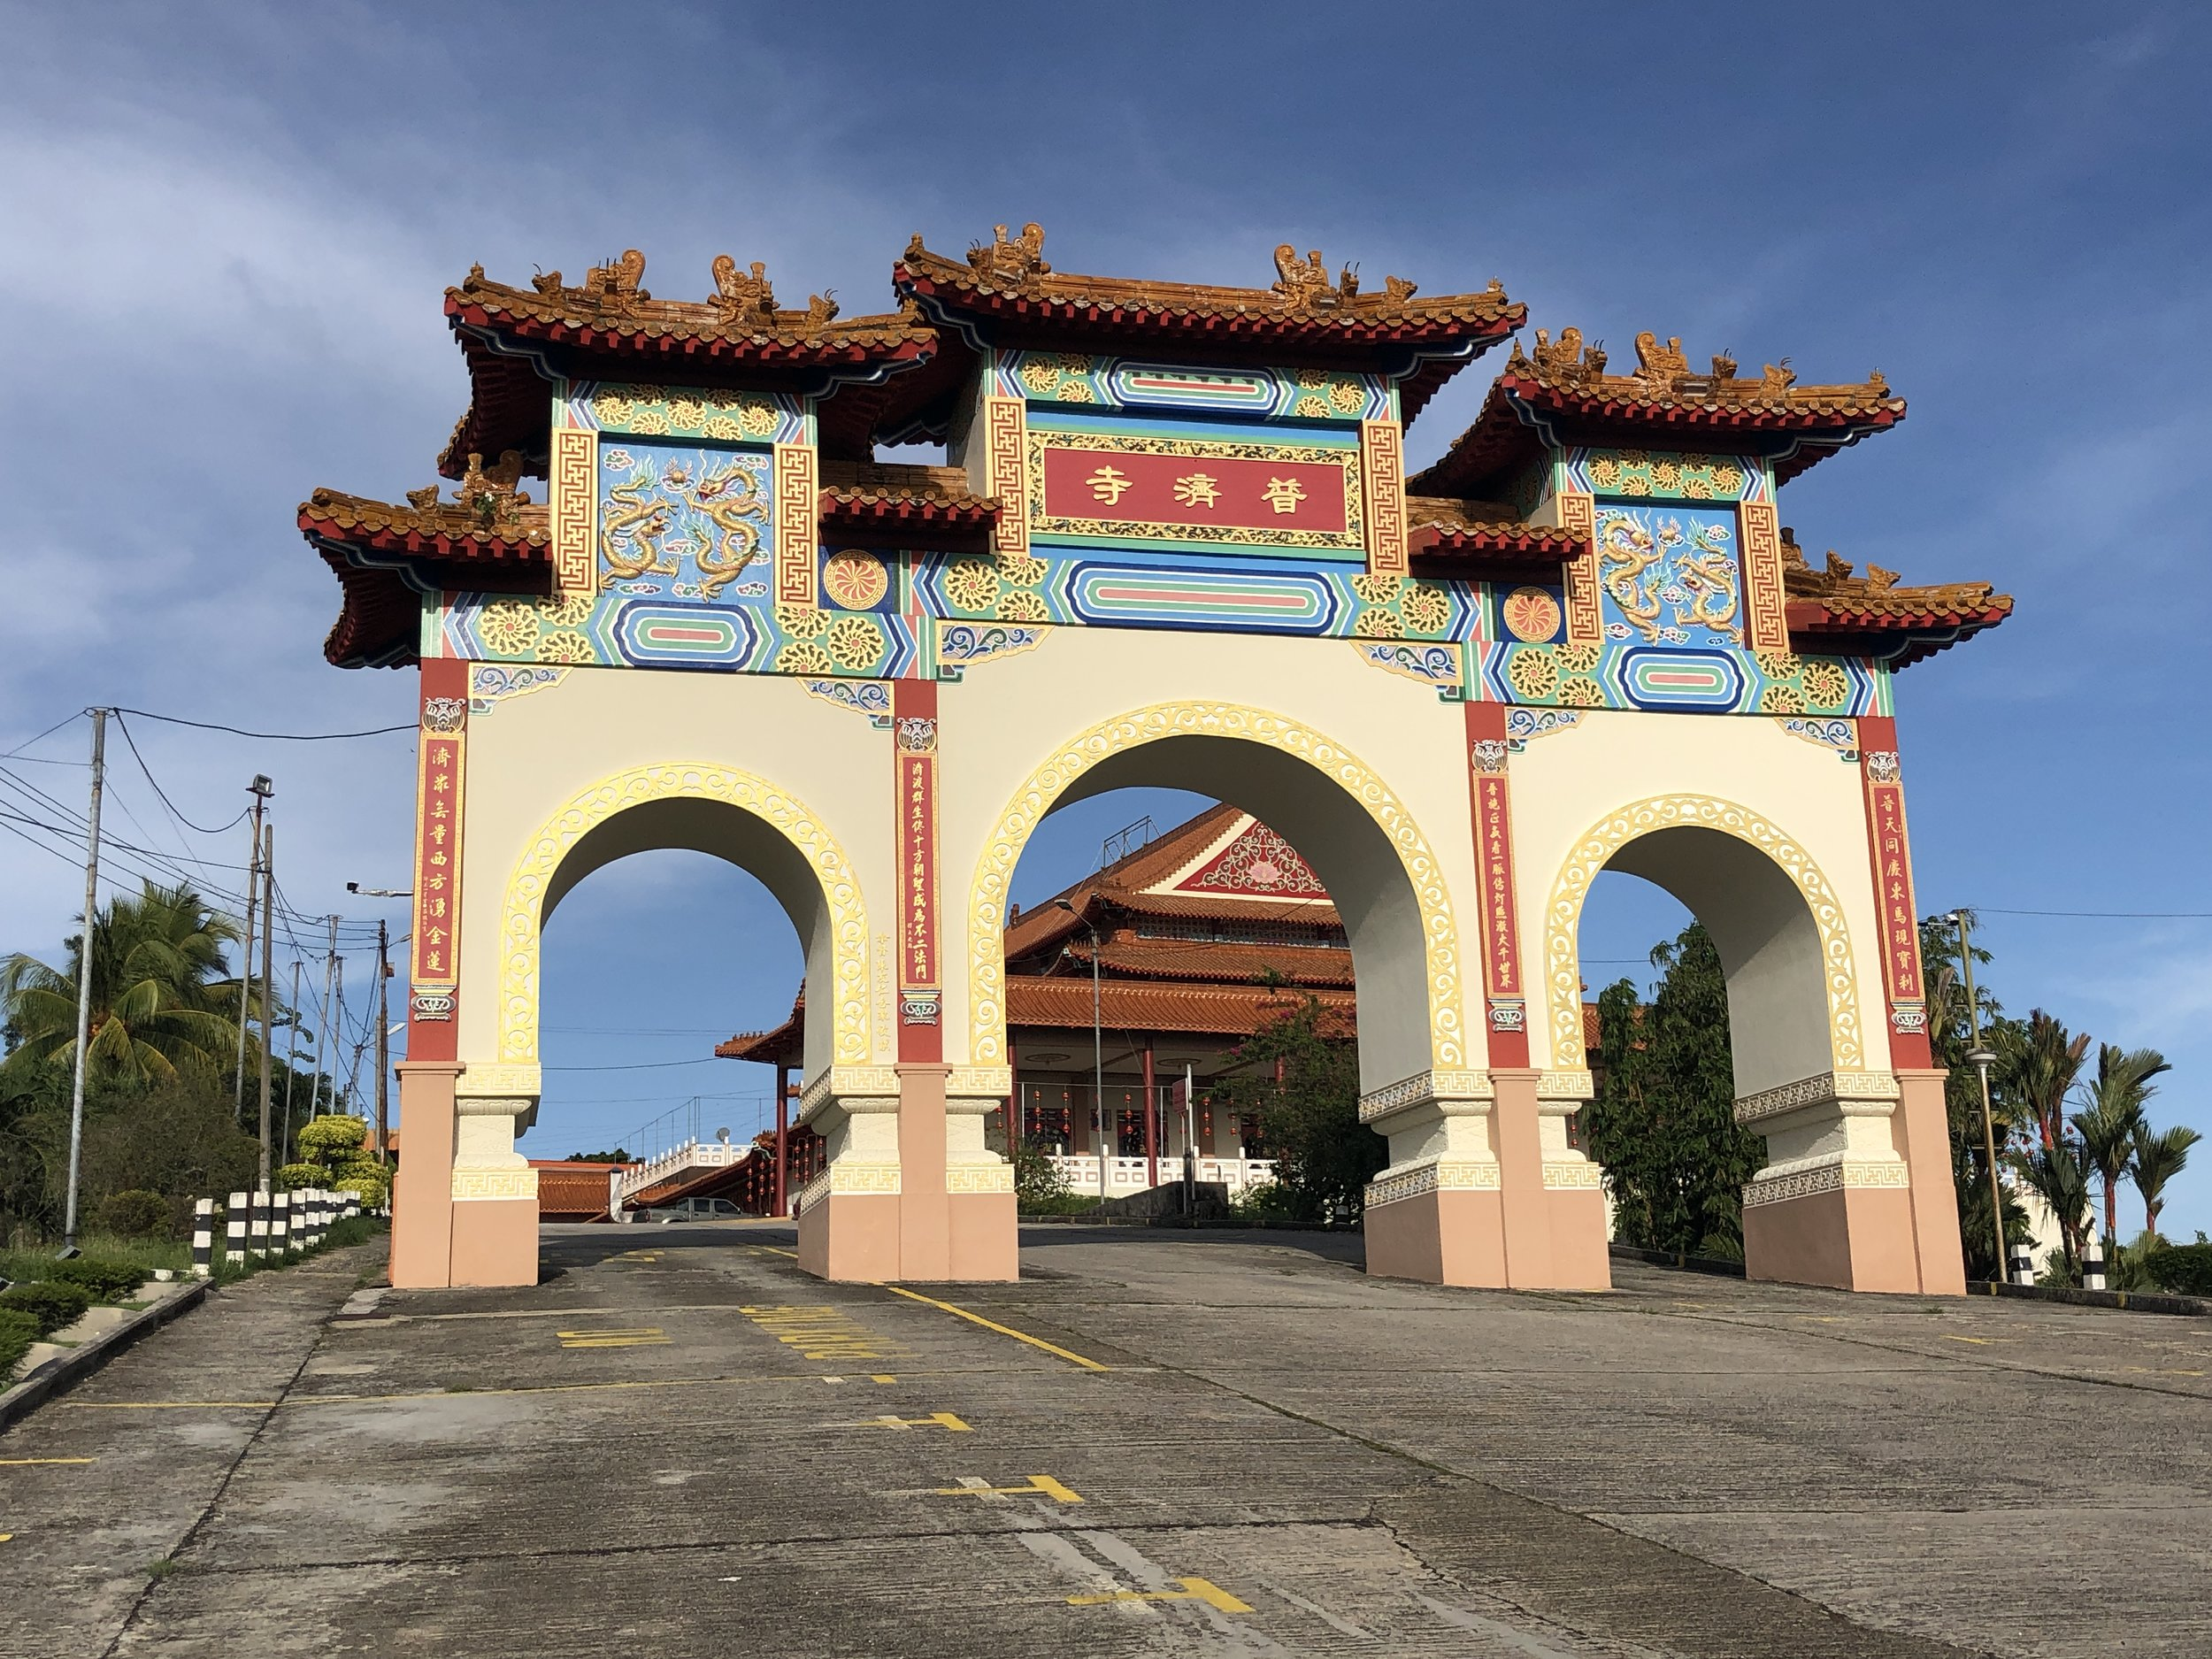 Impressive entrance to Puu Jih Shih Buddhist Temple in Sandakan